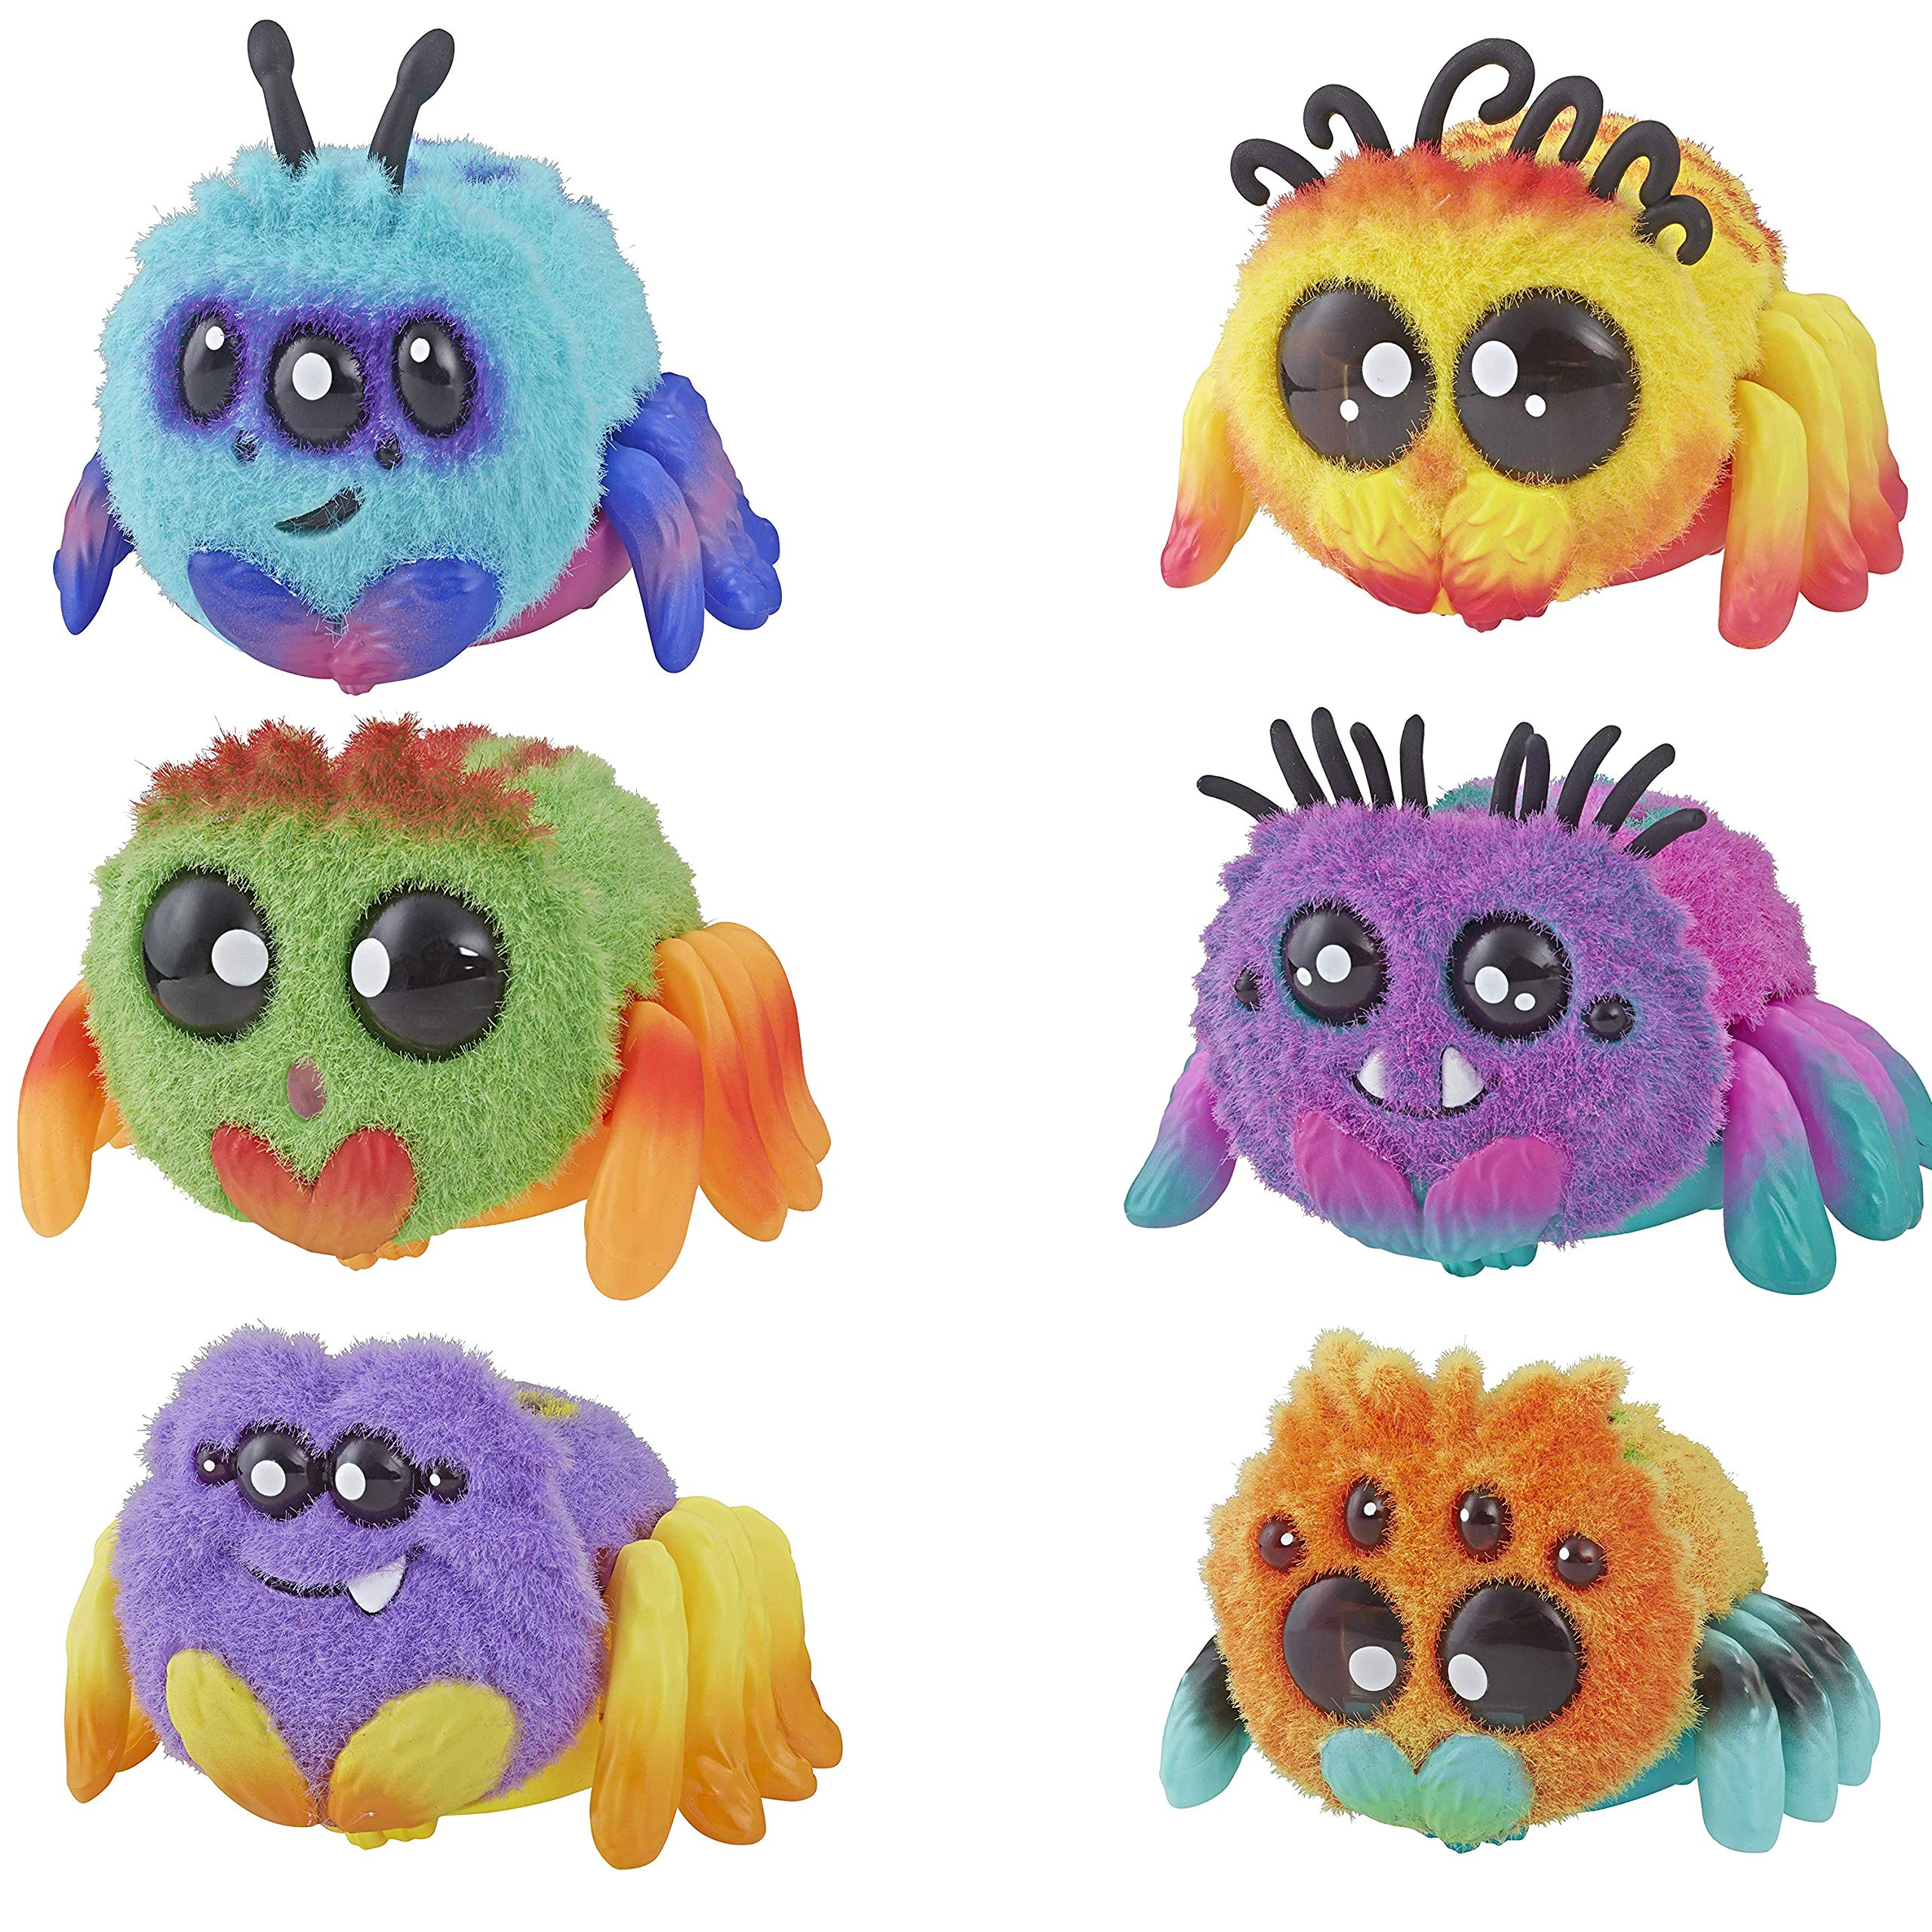 Spider FlufferPuff; Harry Scoots, Klutzers, Toofy Spooder, Bo Dangles and Peeks Voice-Activated Pet; Ages 5 and up - Set of 6 by Hasbro (Image #1)